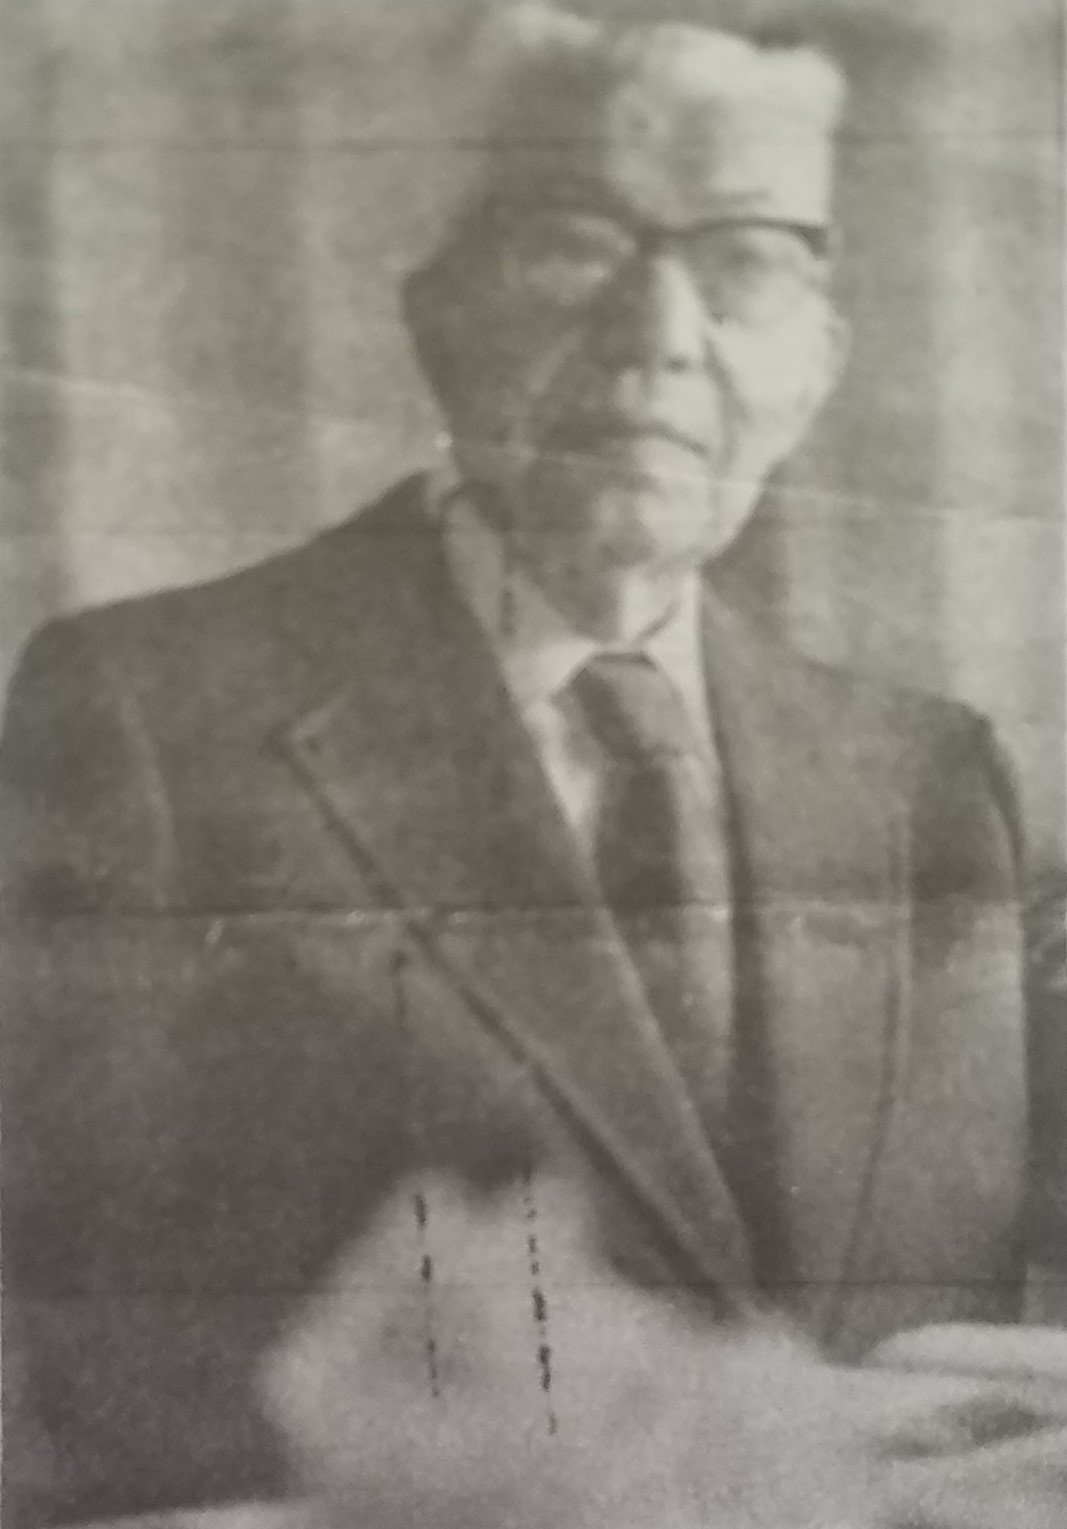 Photo of Captain Herbert Paulson in 1973. Photo taken from a newspaper courtesy of the Lincoln Highway Heritage Corridor.